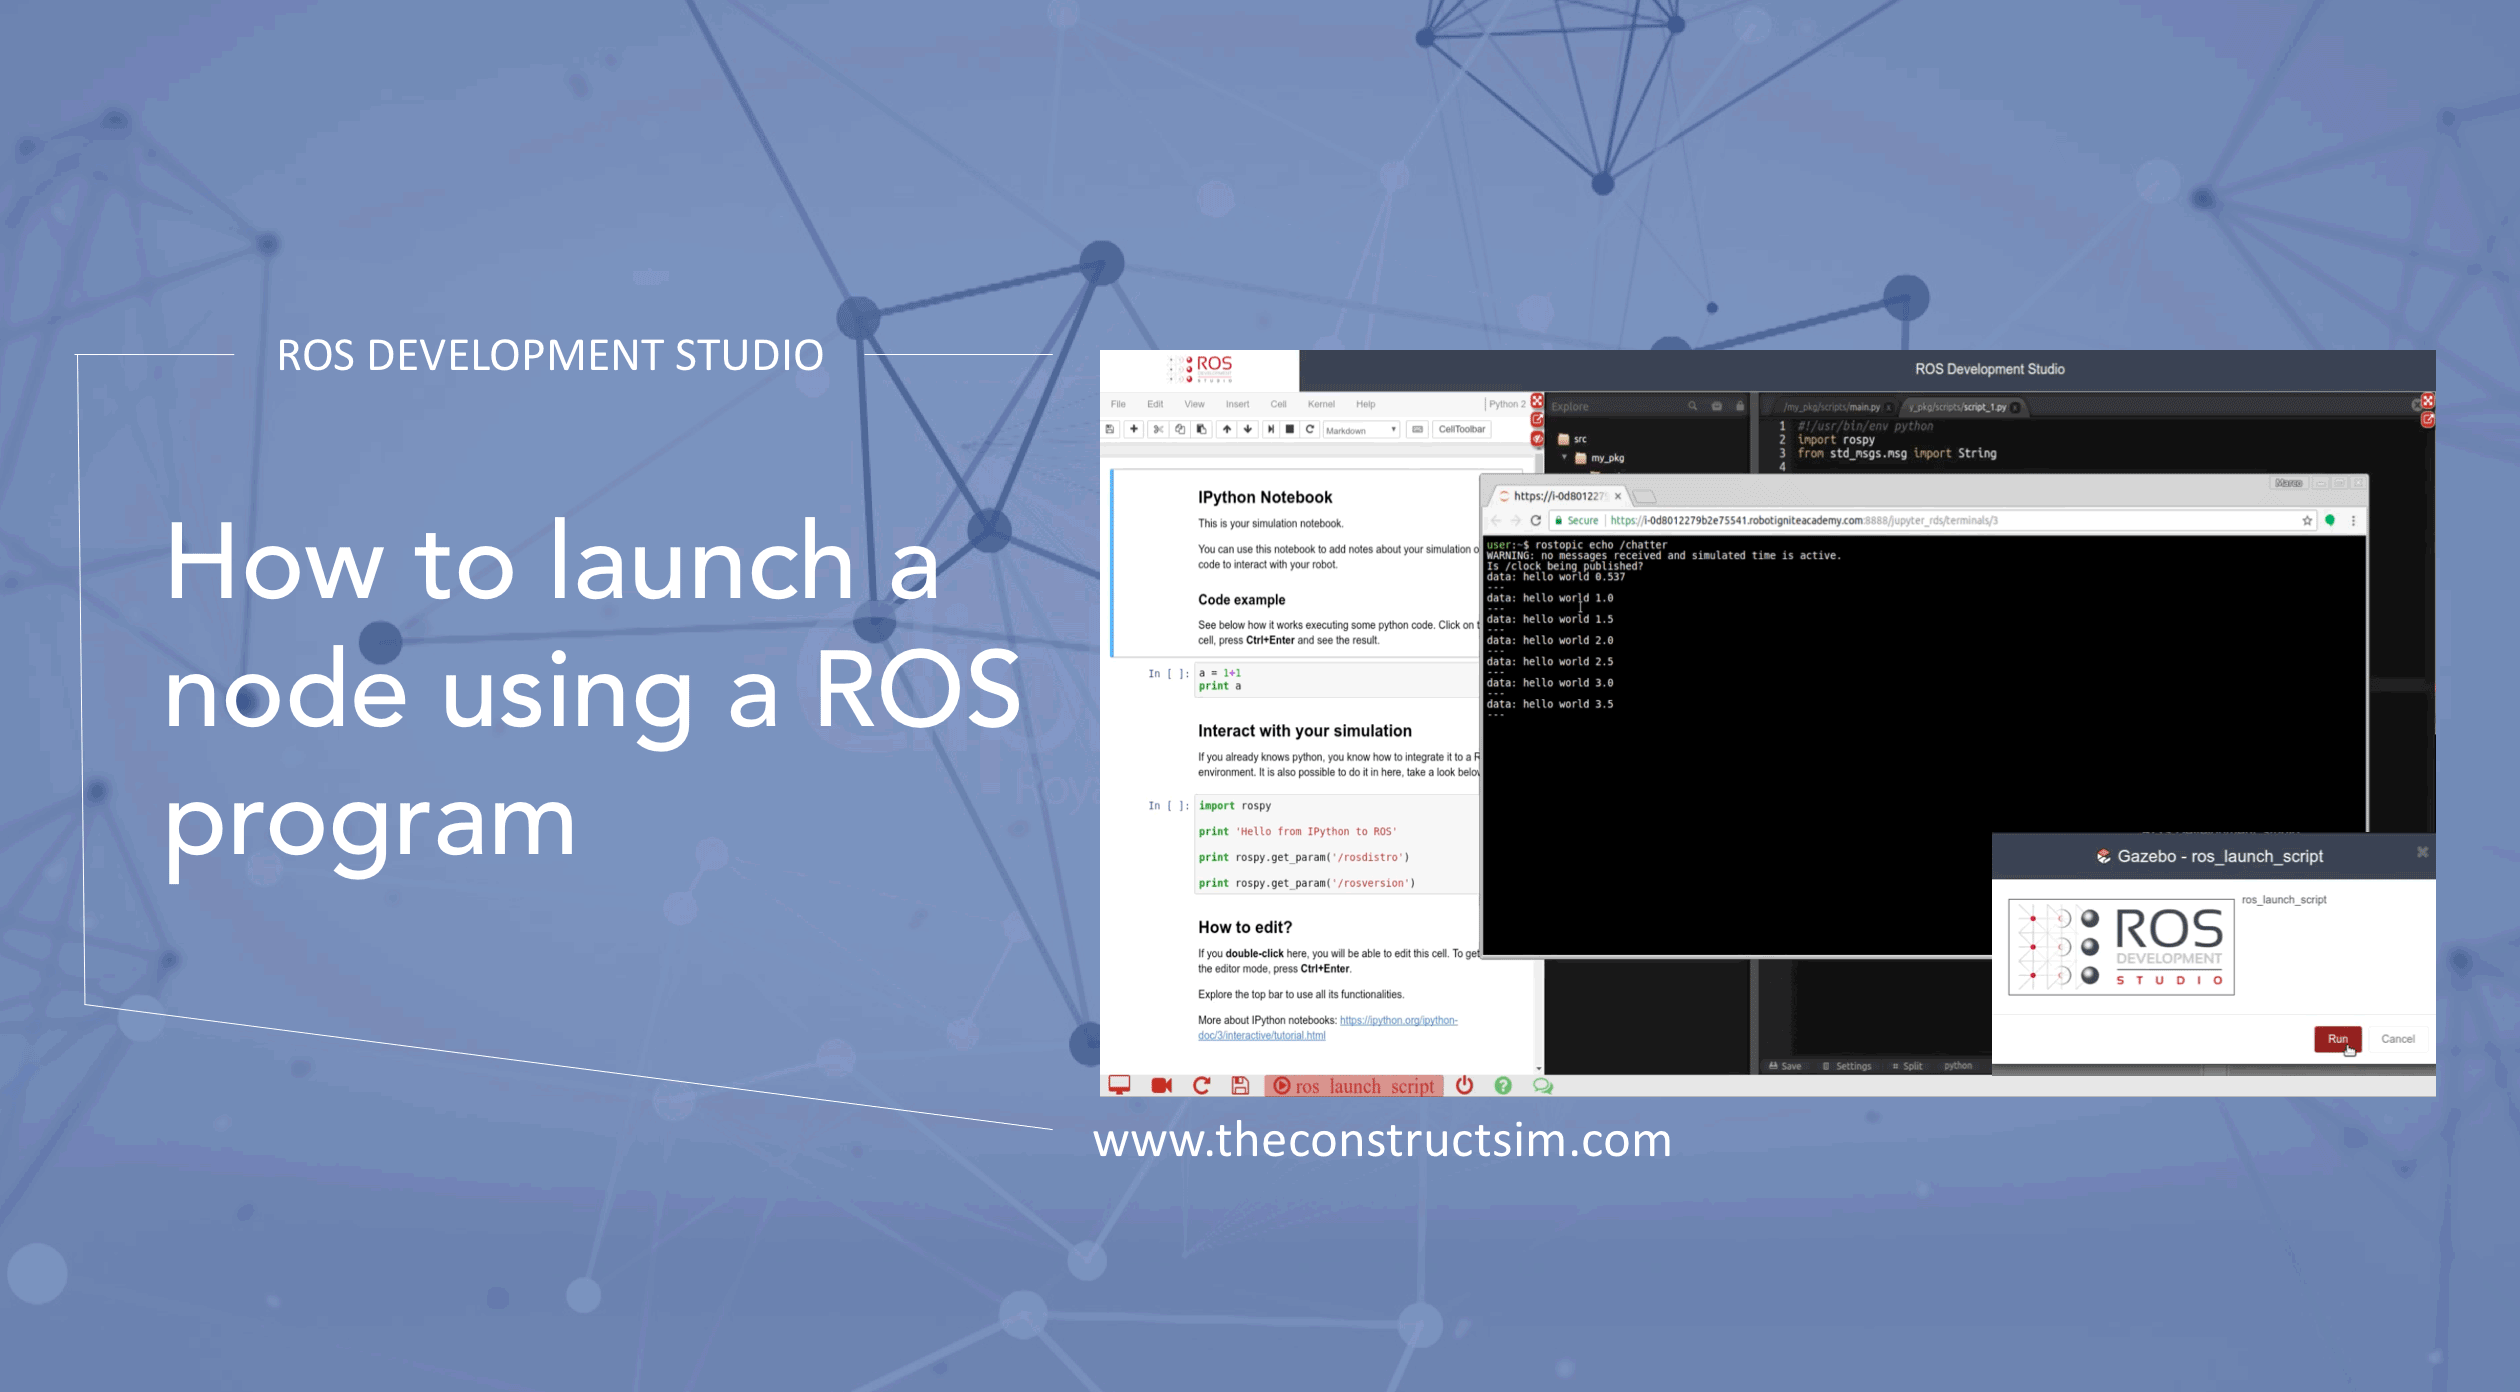 ROS Q&A] How to launch a node using a ROS program | The Construct